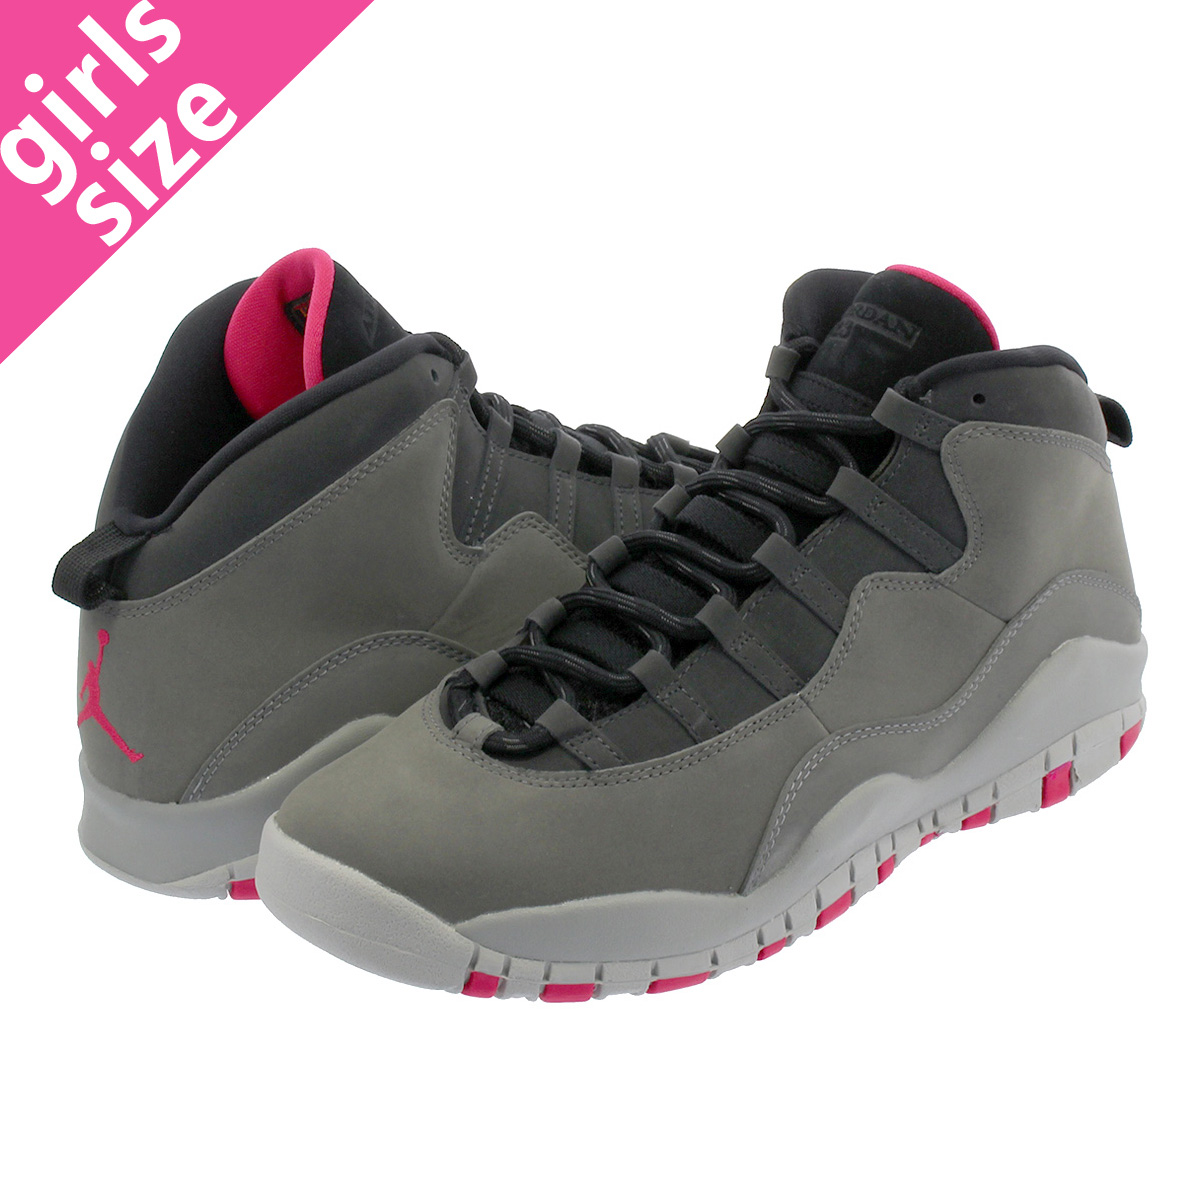 NIKE AIR JORDAN 10 RETRO GG Nike Air Jordan 10 nostalgic GG DARK SMOKE GREY RUSH  PINK BLACK IRON GREY 487 6a5a4d38d